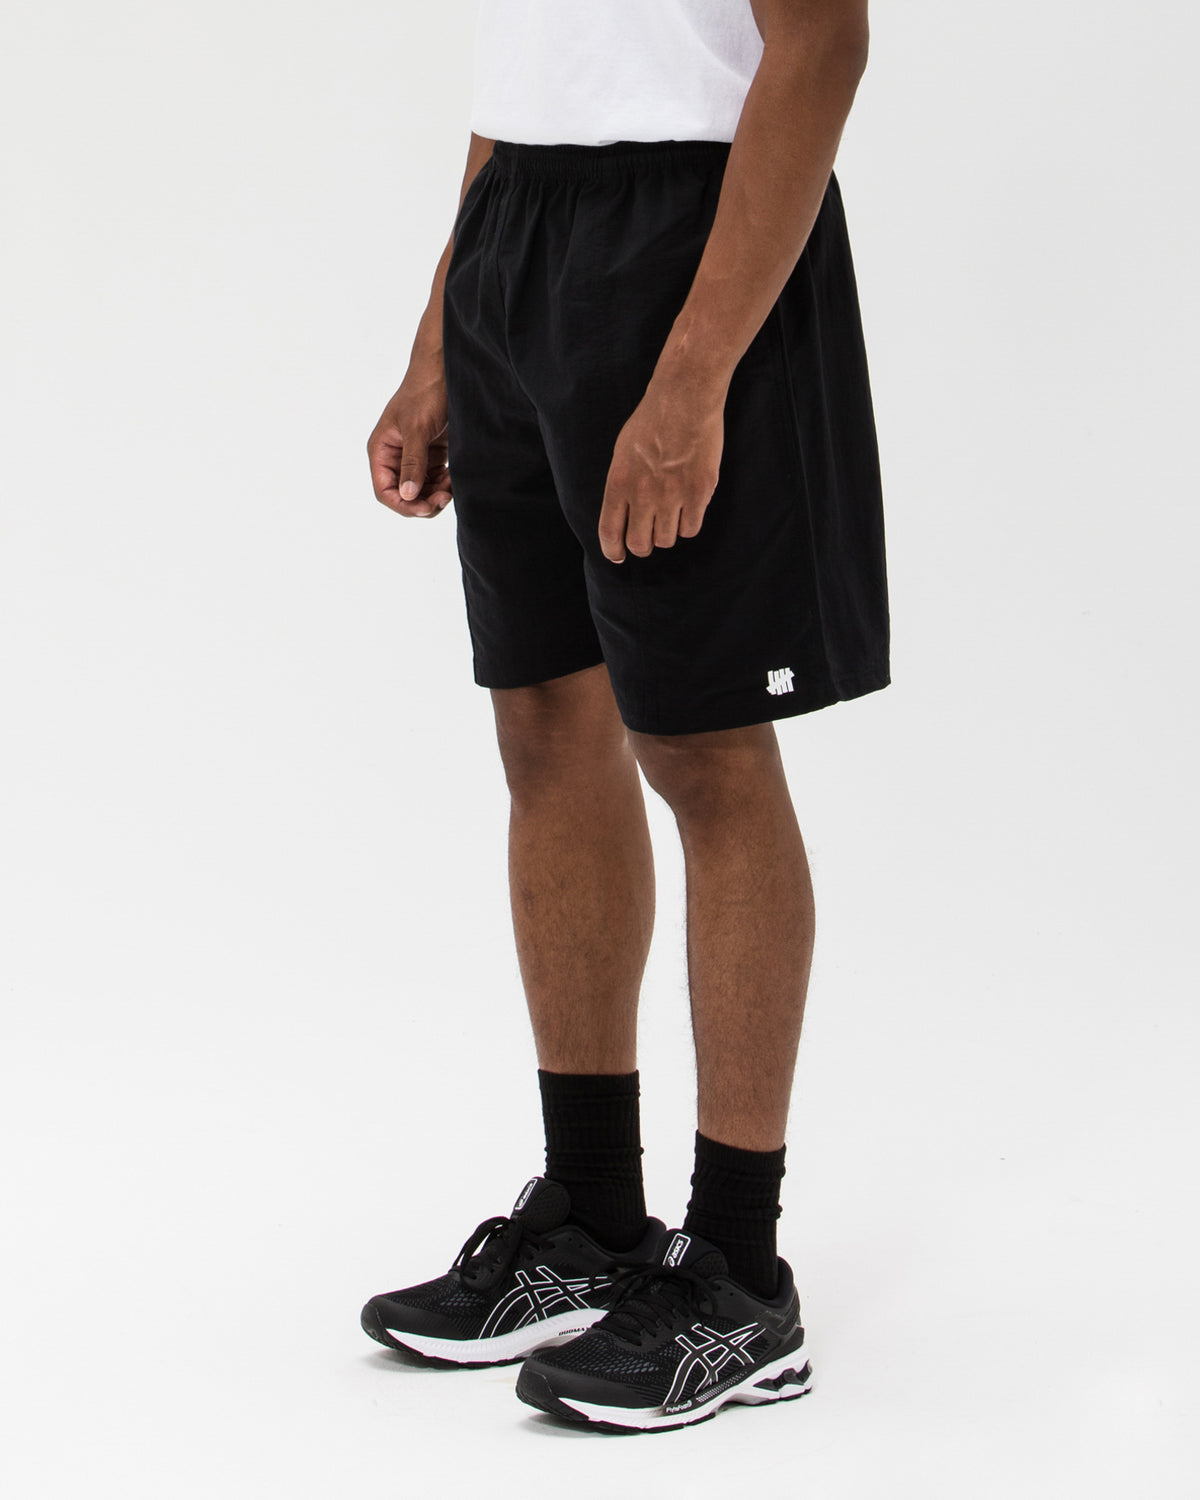 UNDEFEATED FELLED SEAM SHORT